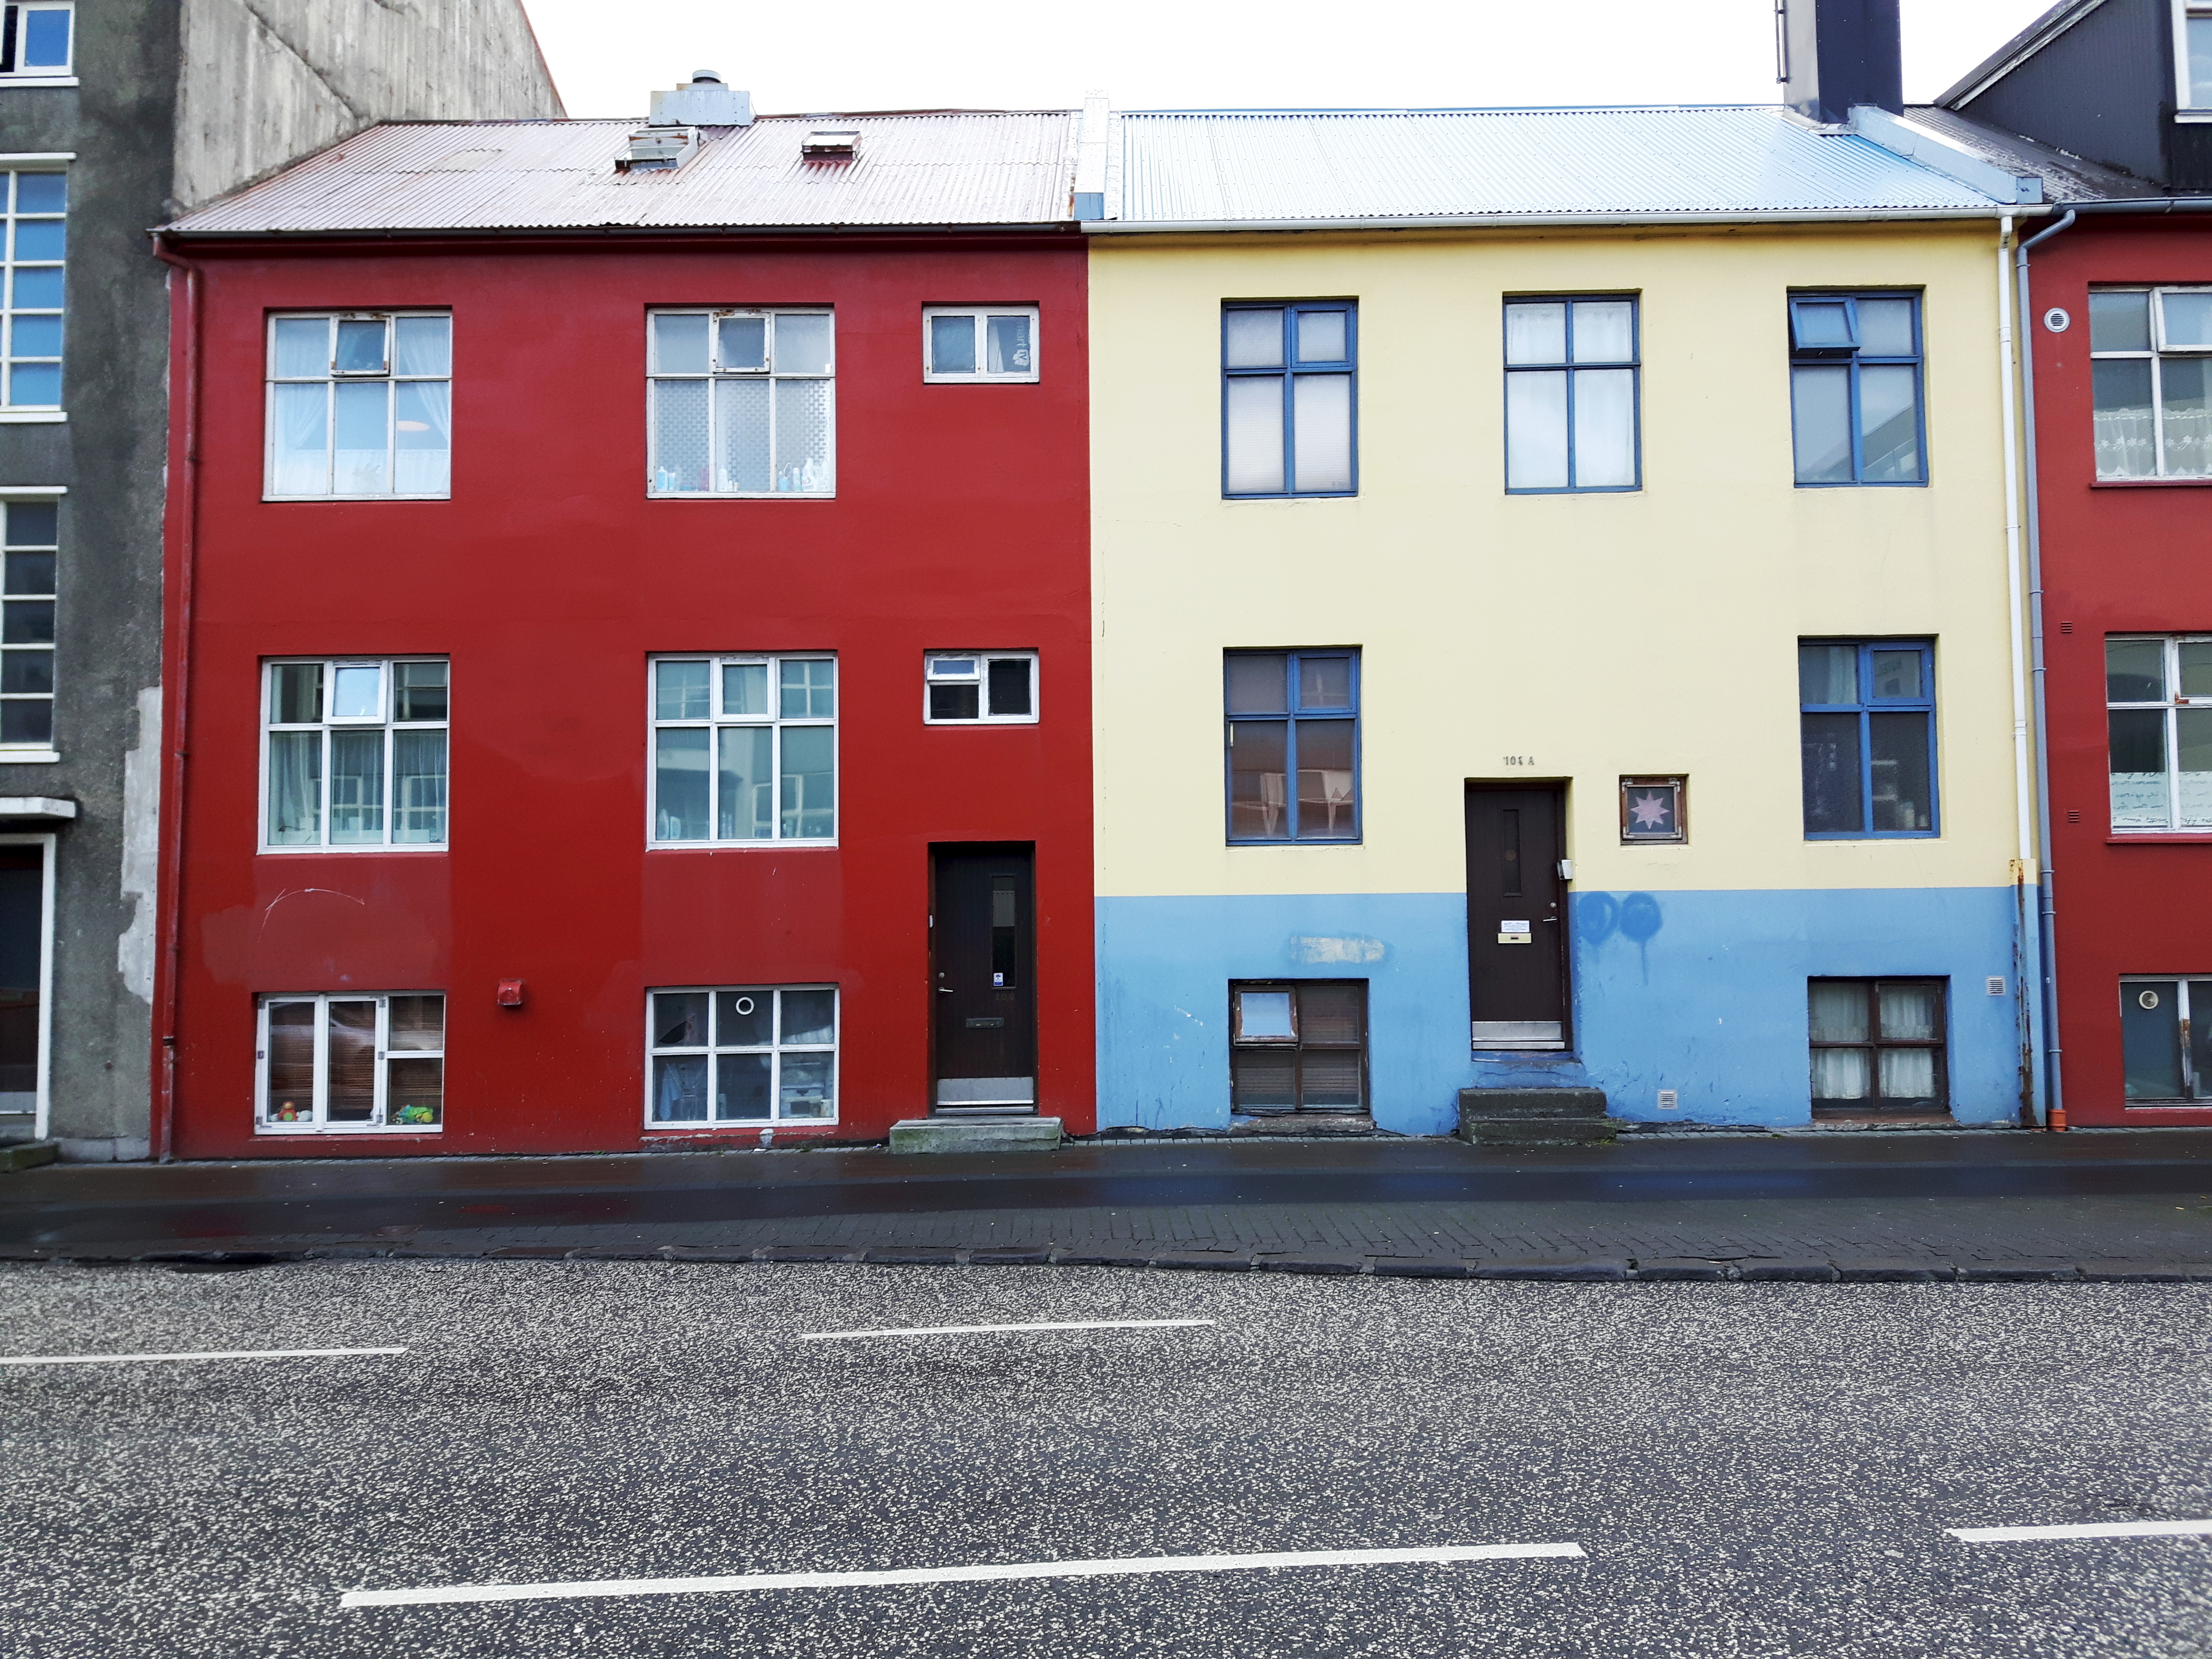 Colourful_Streets_of_Reykjavik_Iceland